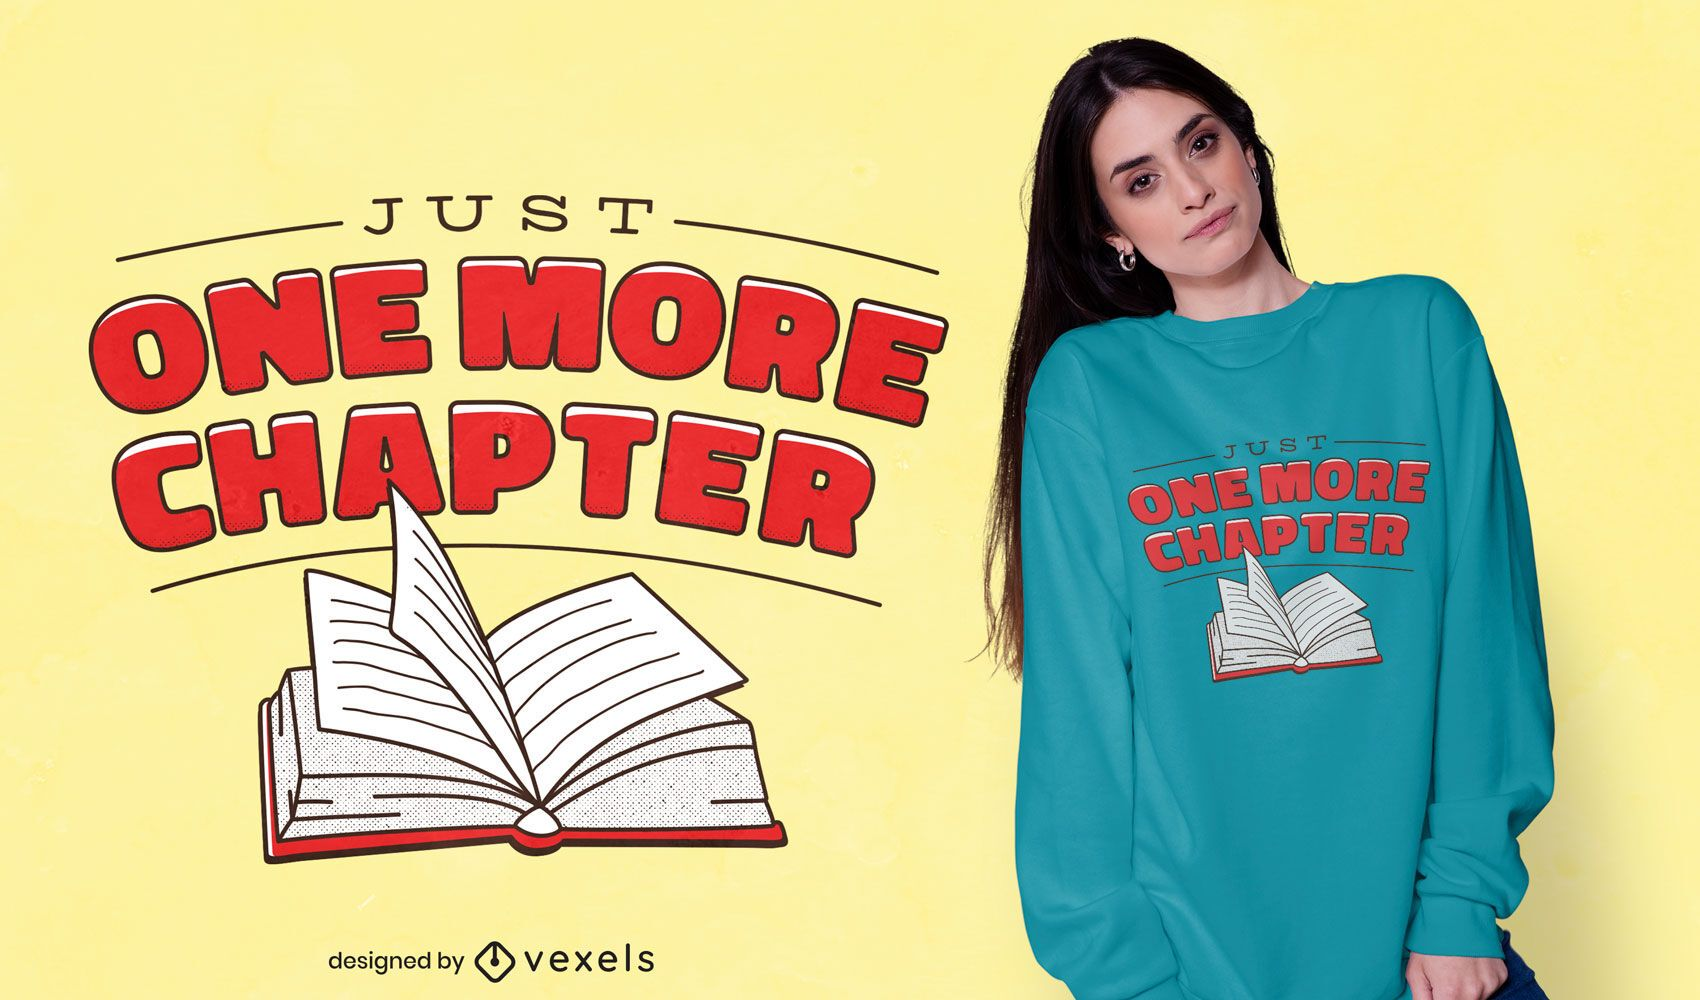 One more chapter t-shirt design